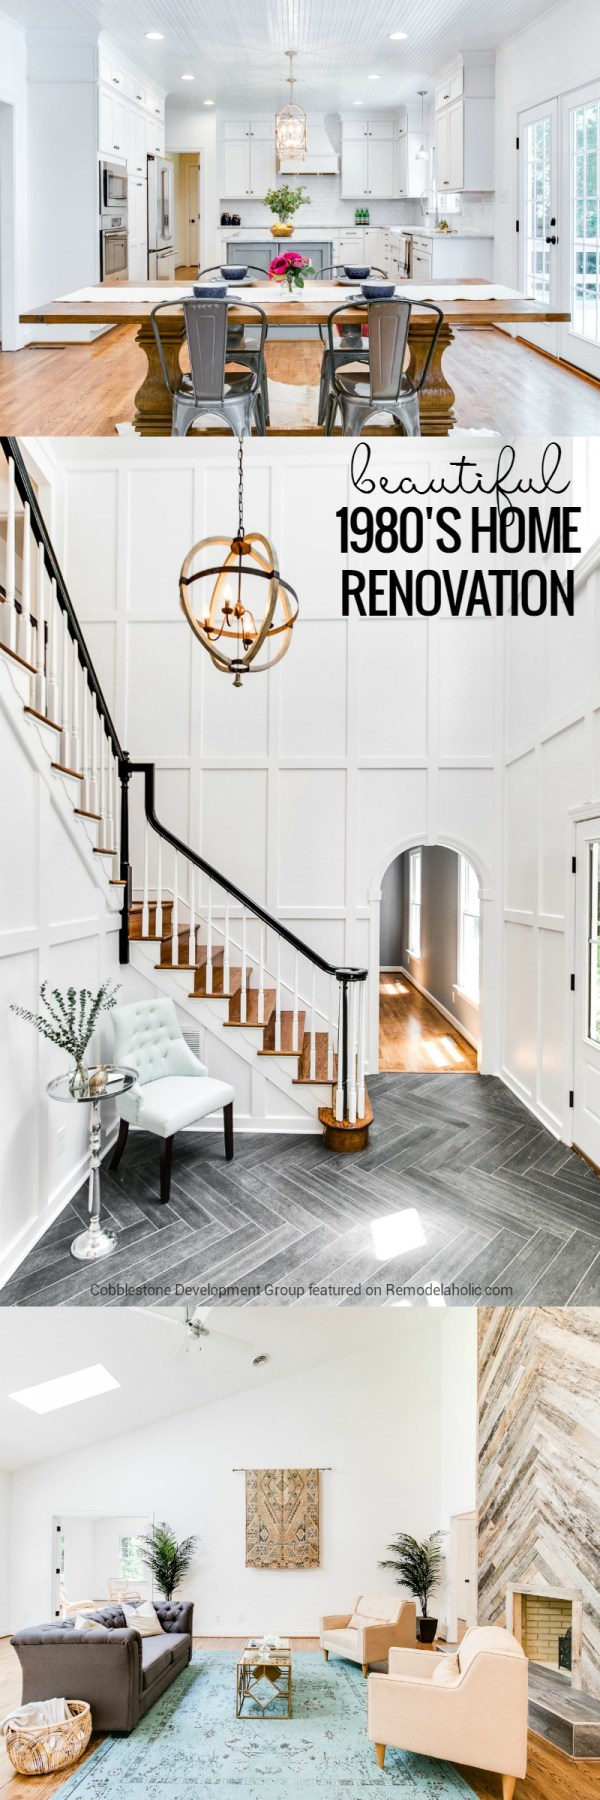 This dated 1980's renovation became a beautiful and classically modern home with some beautiful design choices, including a reclaimed wood facade fireplace and dark herringbone tile in the entryway. Details and more before and afters on Remodelaholic.com